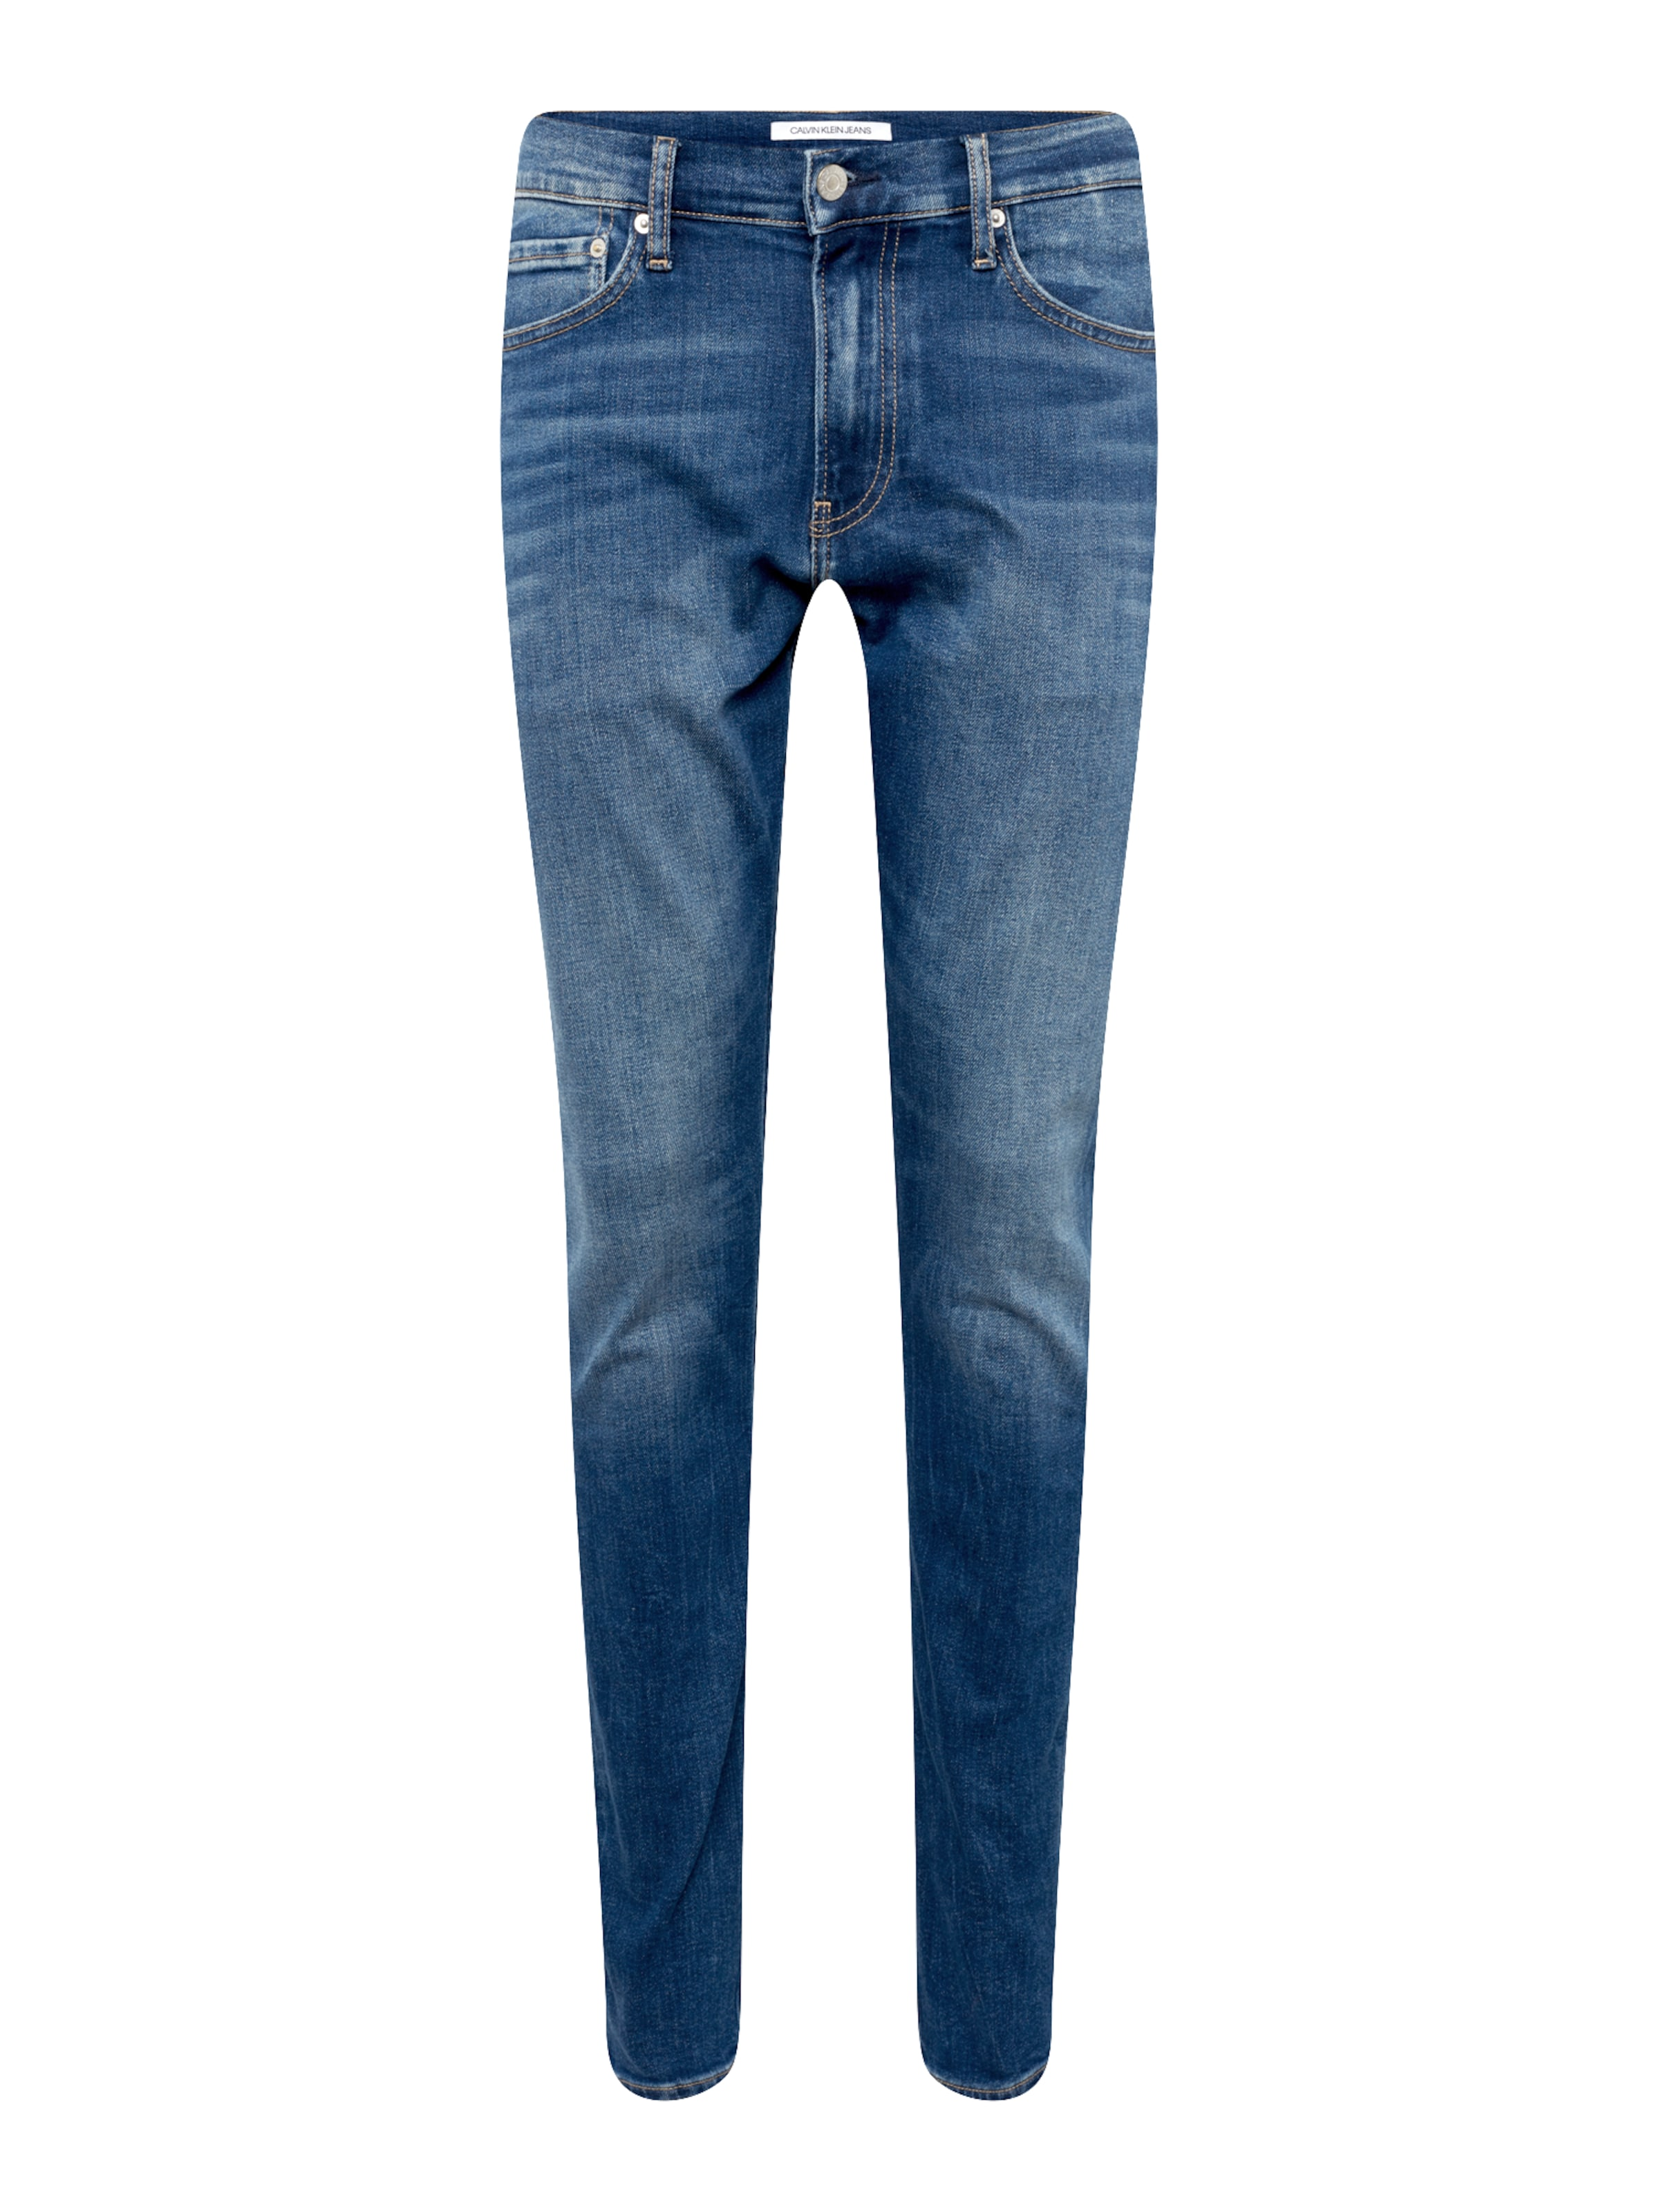 Klein Blue Calvin Denim Slim' 'ckj Jeans 026 In PiuTOkXZ